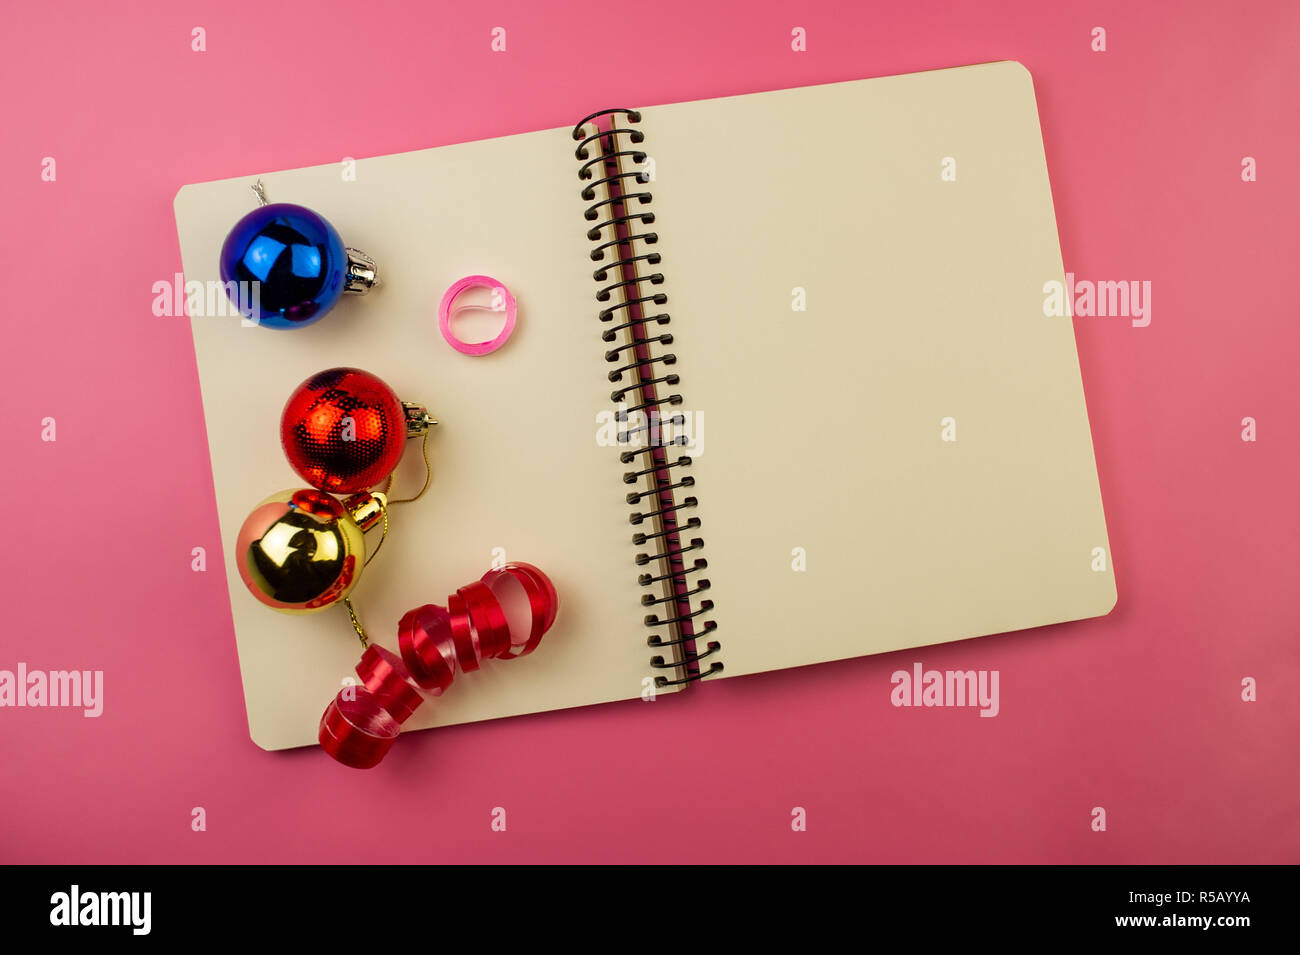 Open Notebook And Christmas Decorations On A Pink Background